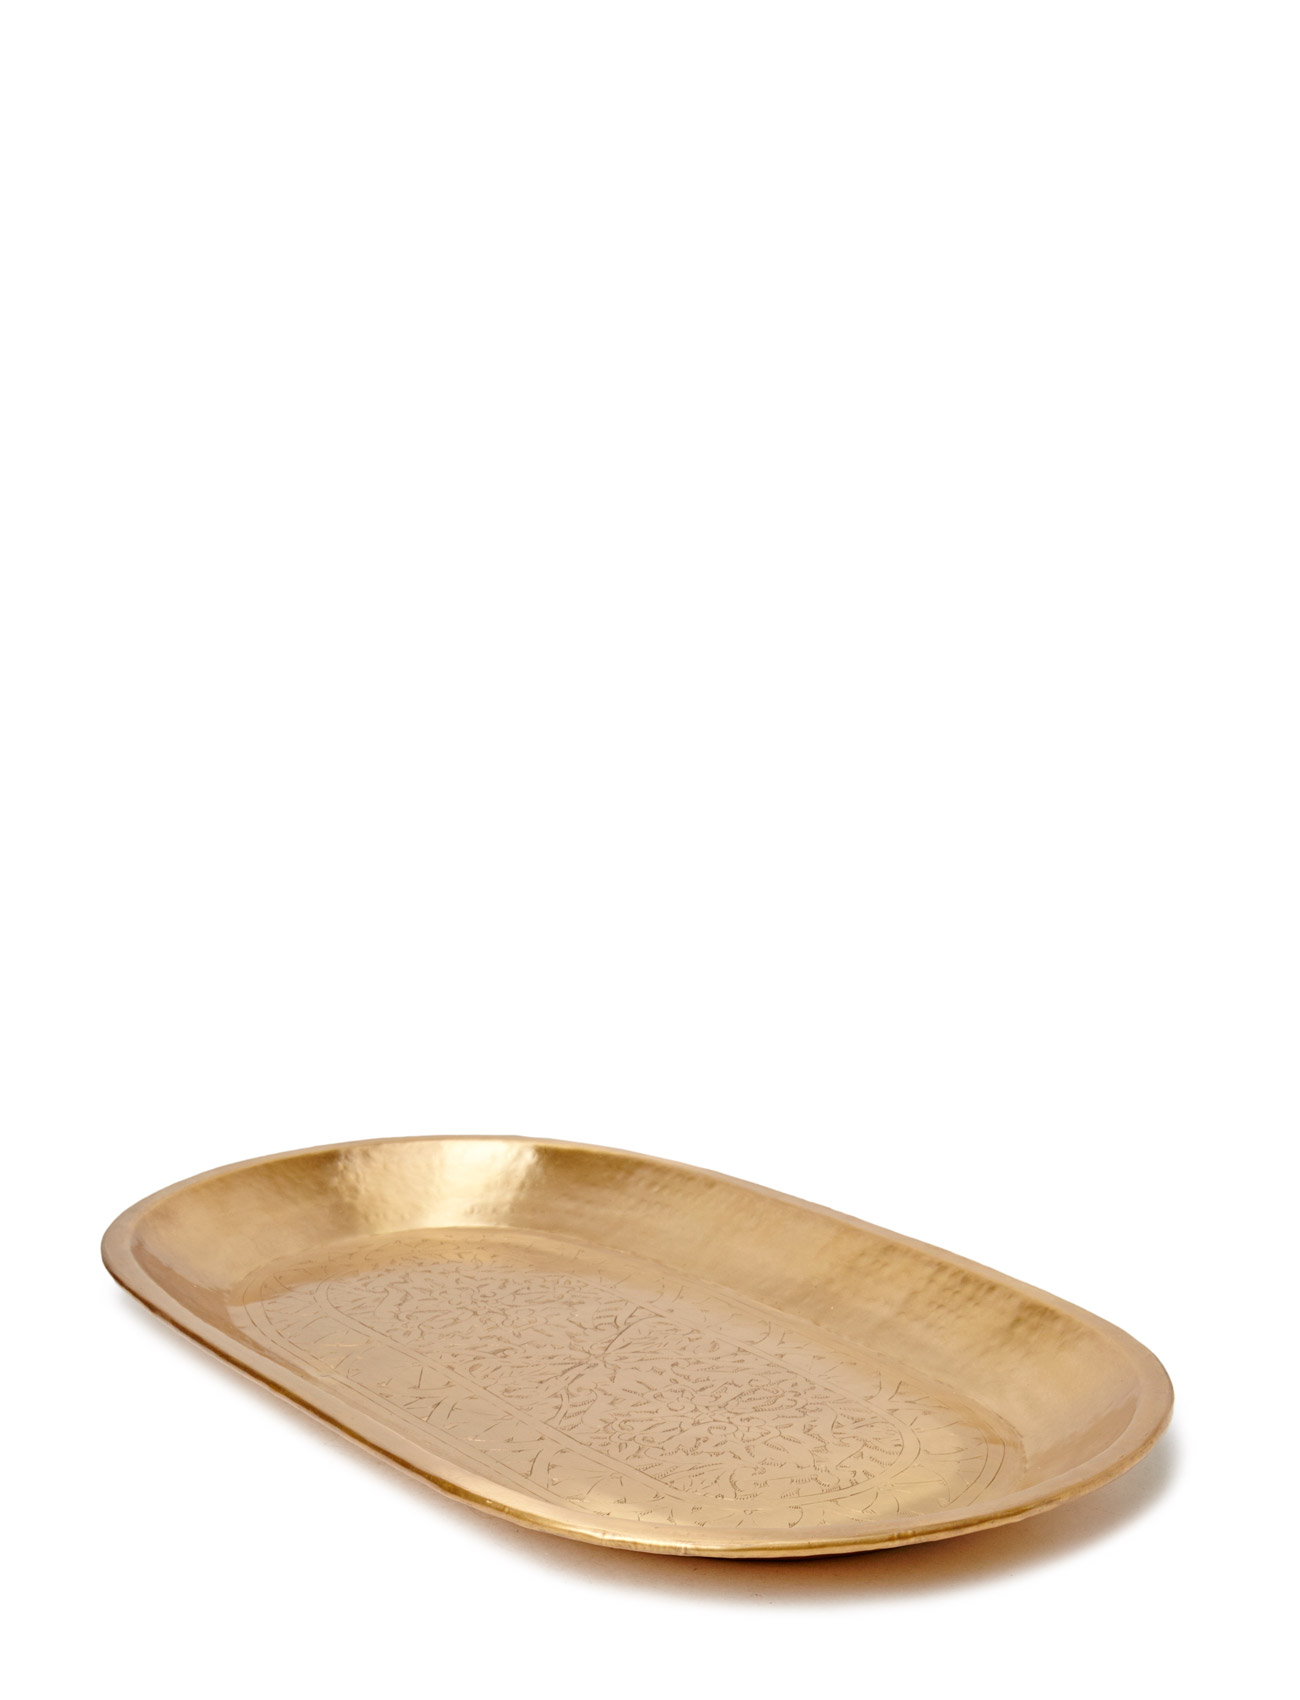 Carved Brass Deco Tray